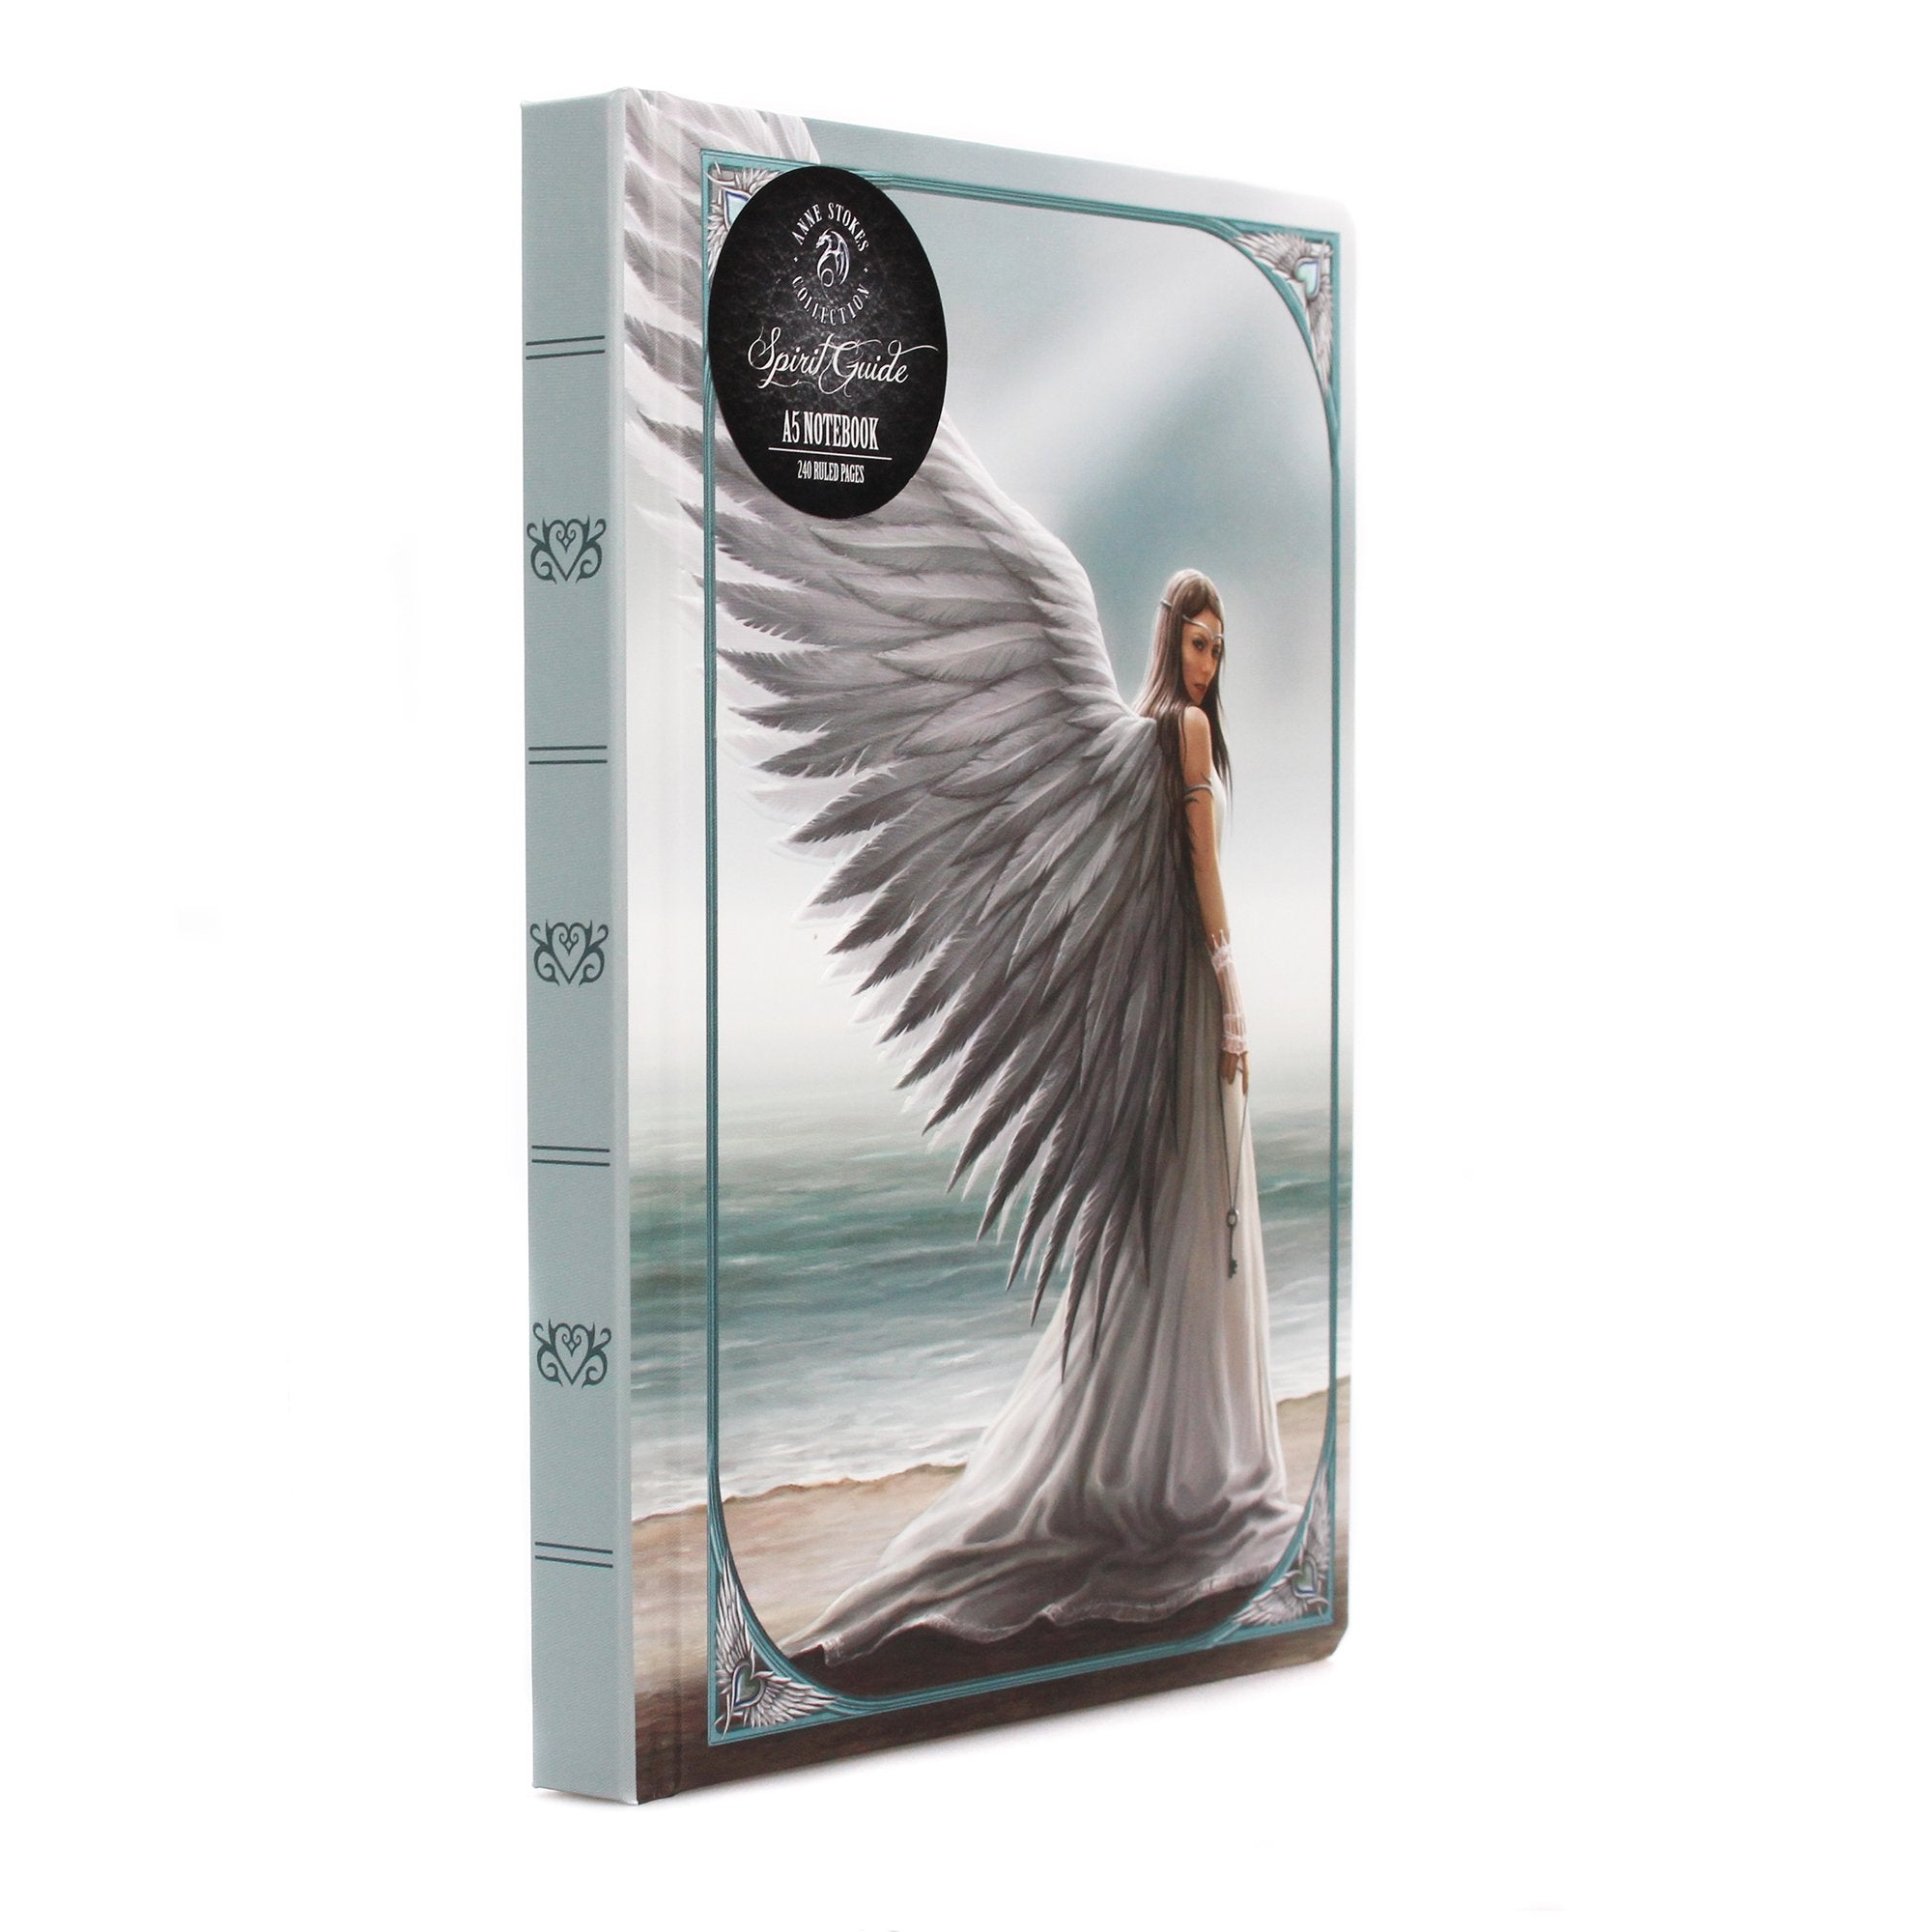 Anne Stokes A5 Notebook - Spirit Guide - Half Moon Bay US